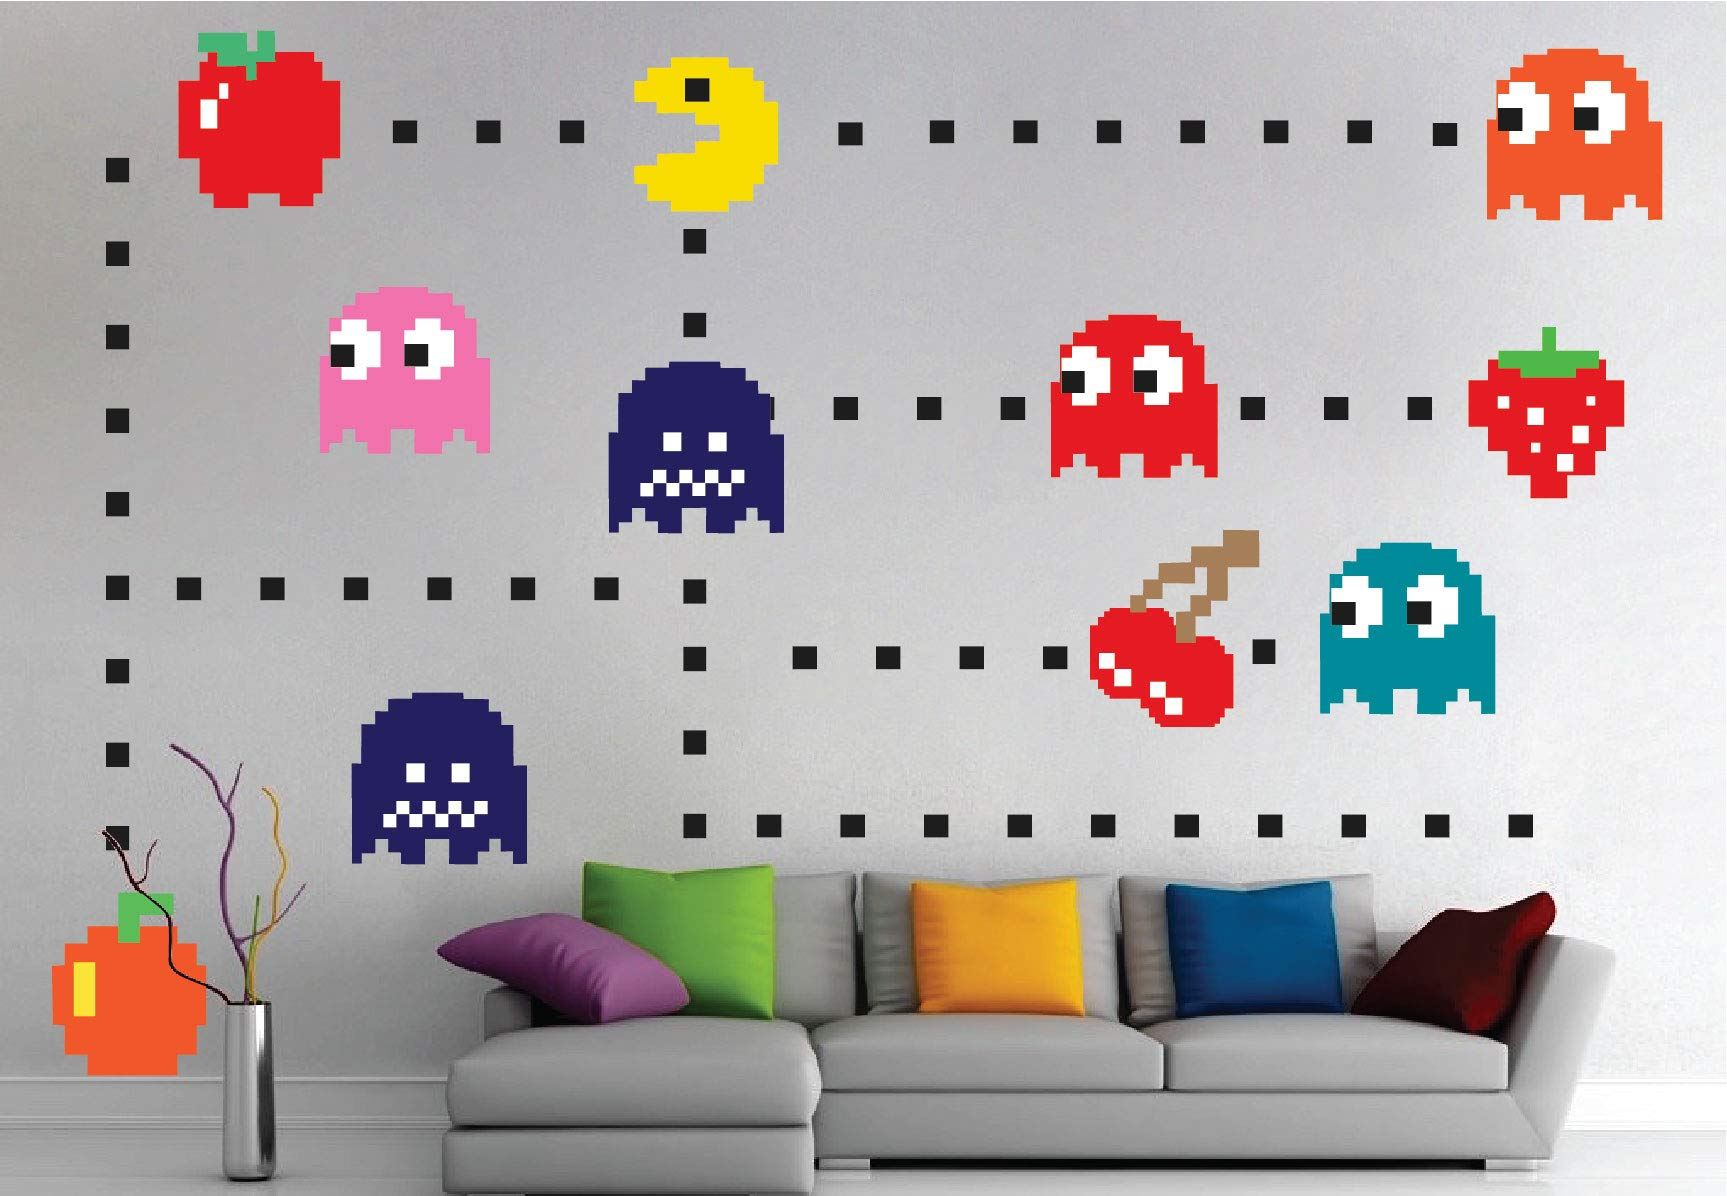 Pac Man Sticker for The Bedroom - Pac-Man Wall Decal Atari Bedroom Design Game Room Pac-Man Wall Mural, n52 by Prime Decals (Image #4)